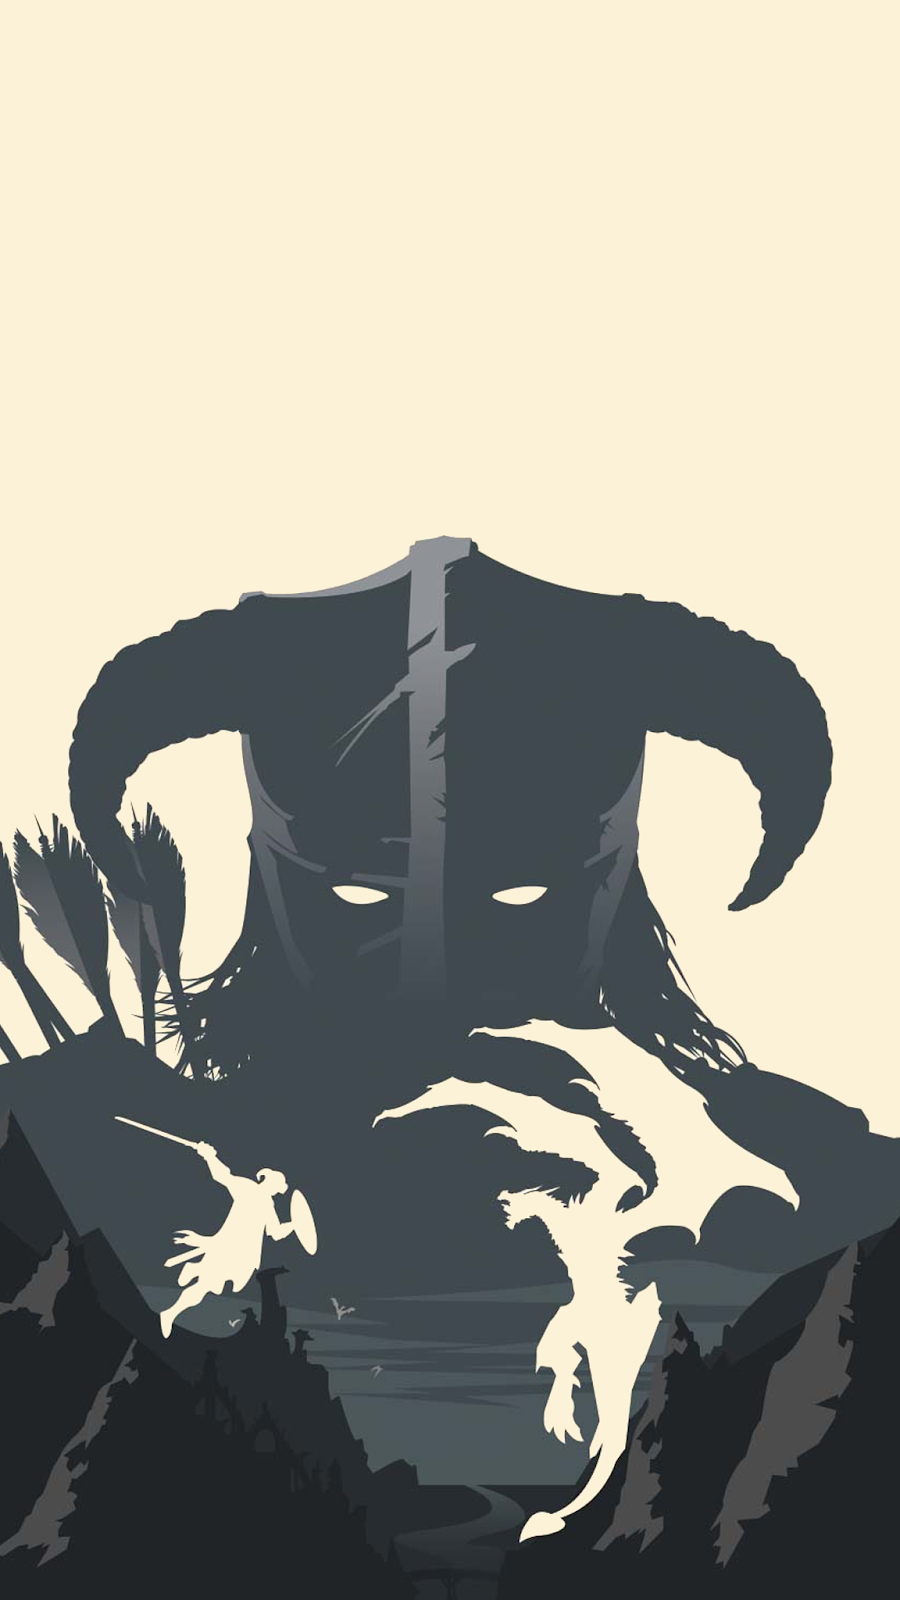 #Skyrim phone wallpaper